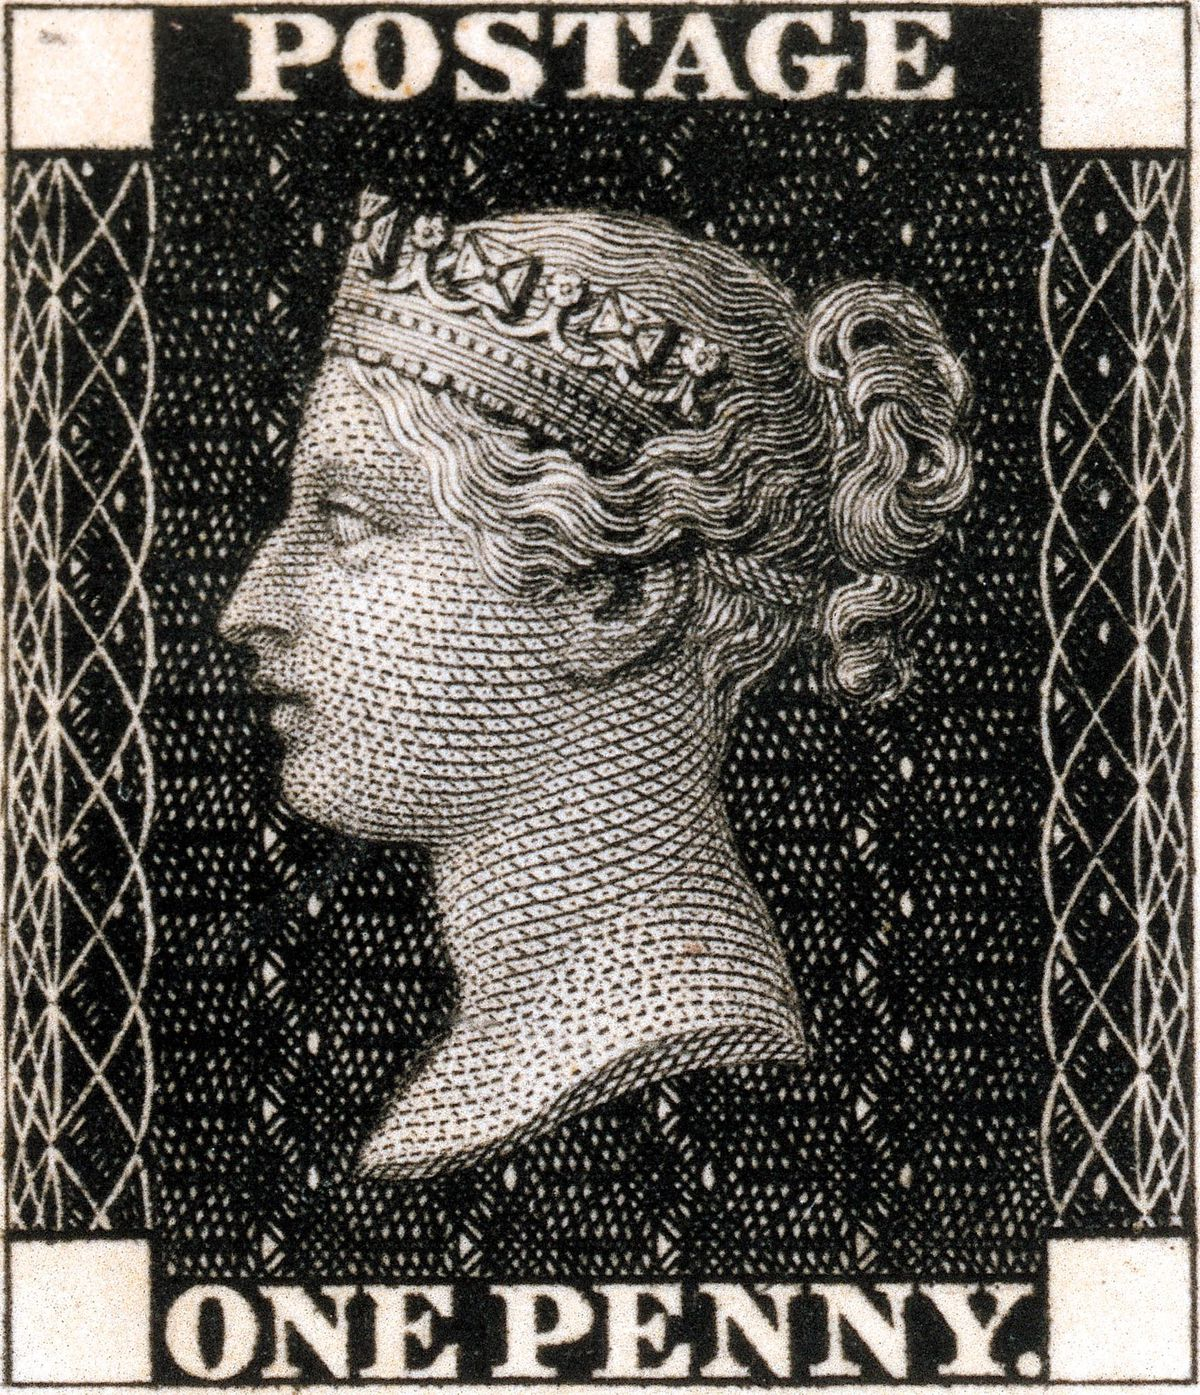 The Penny Black was the first postage stamp, but proved easy to forge